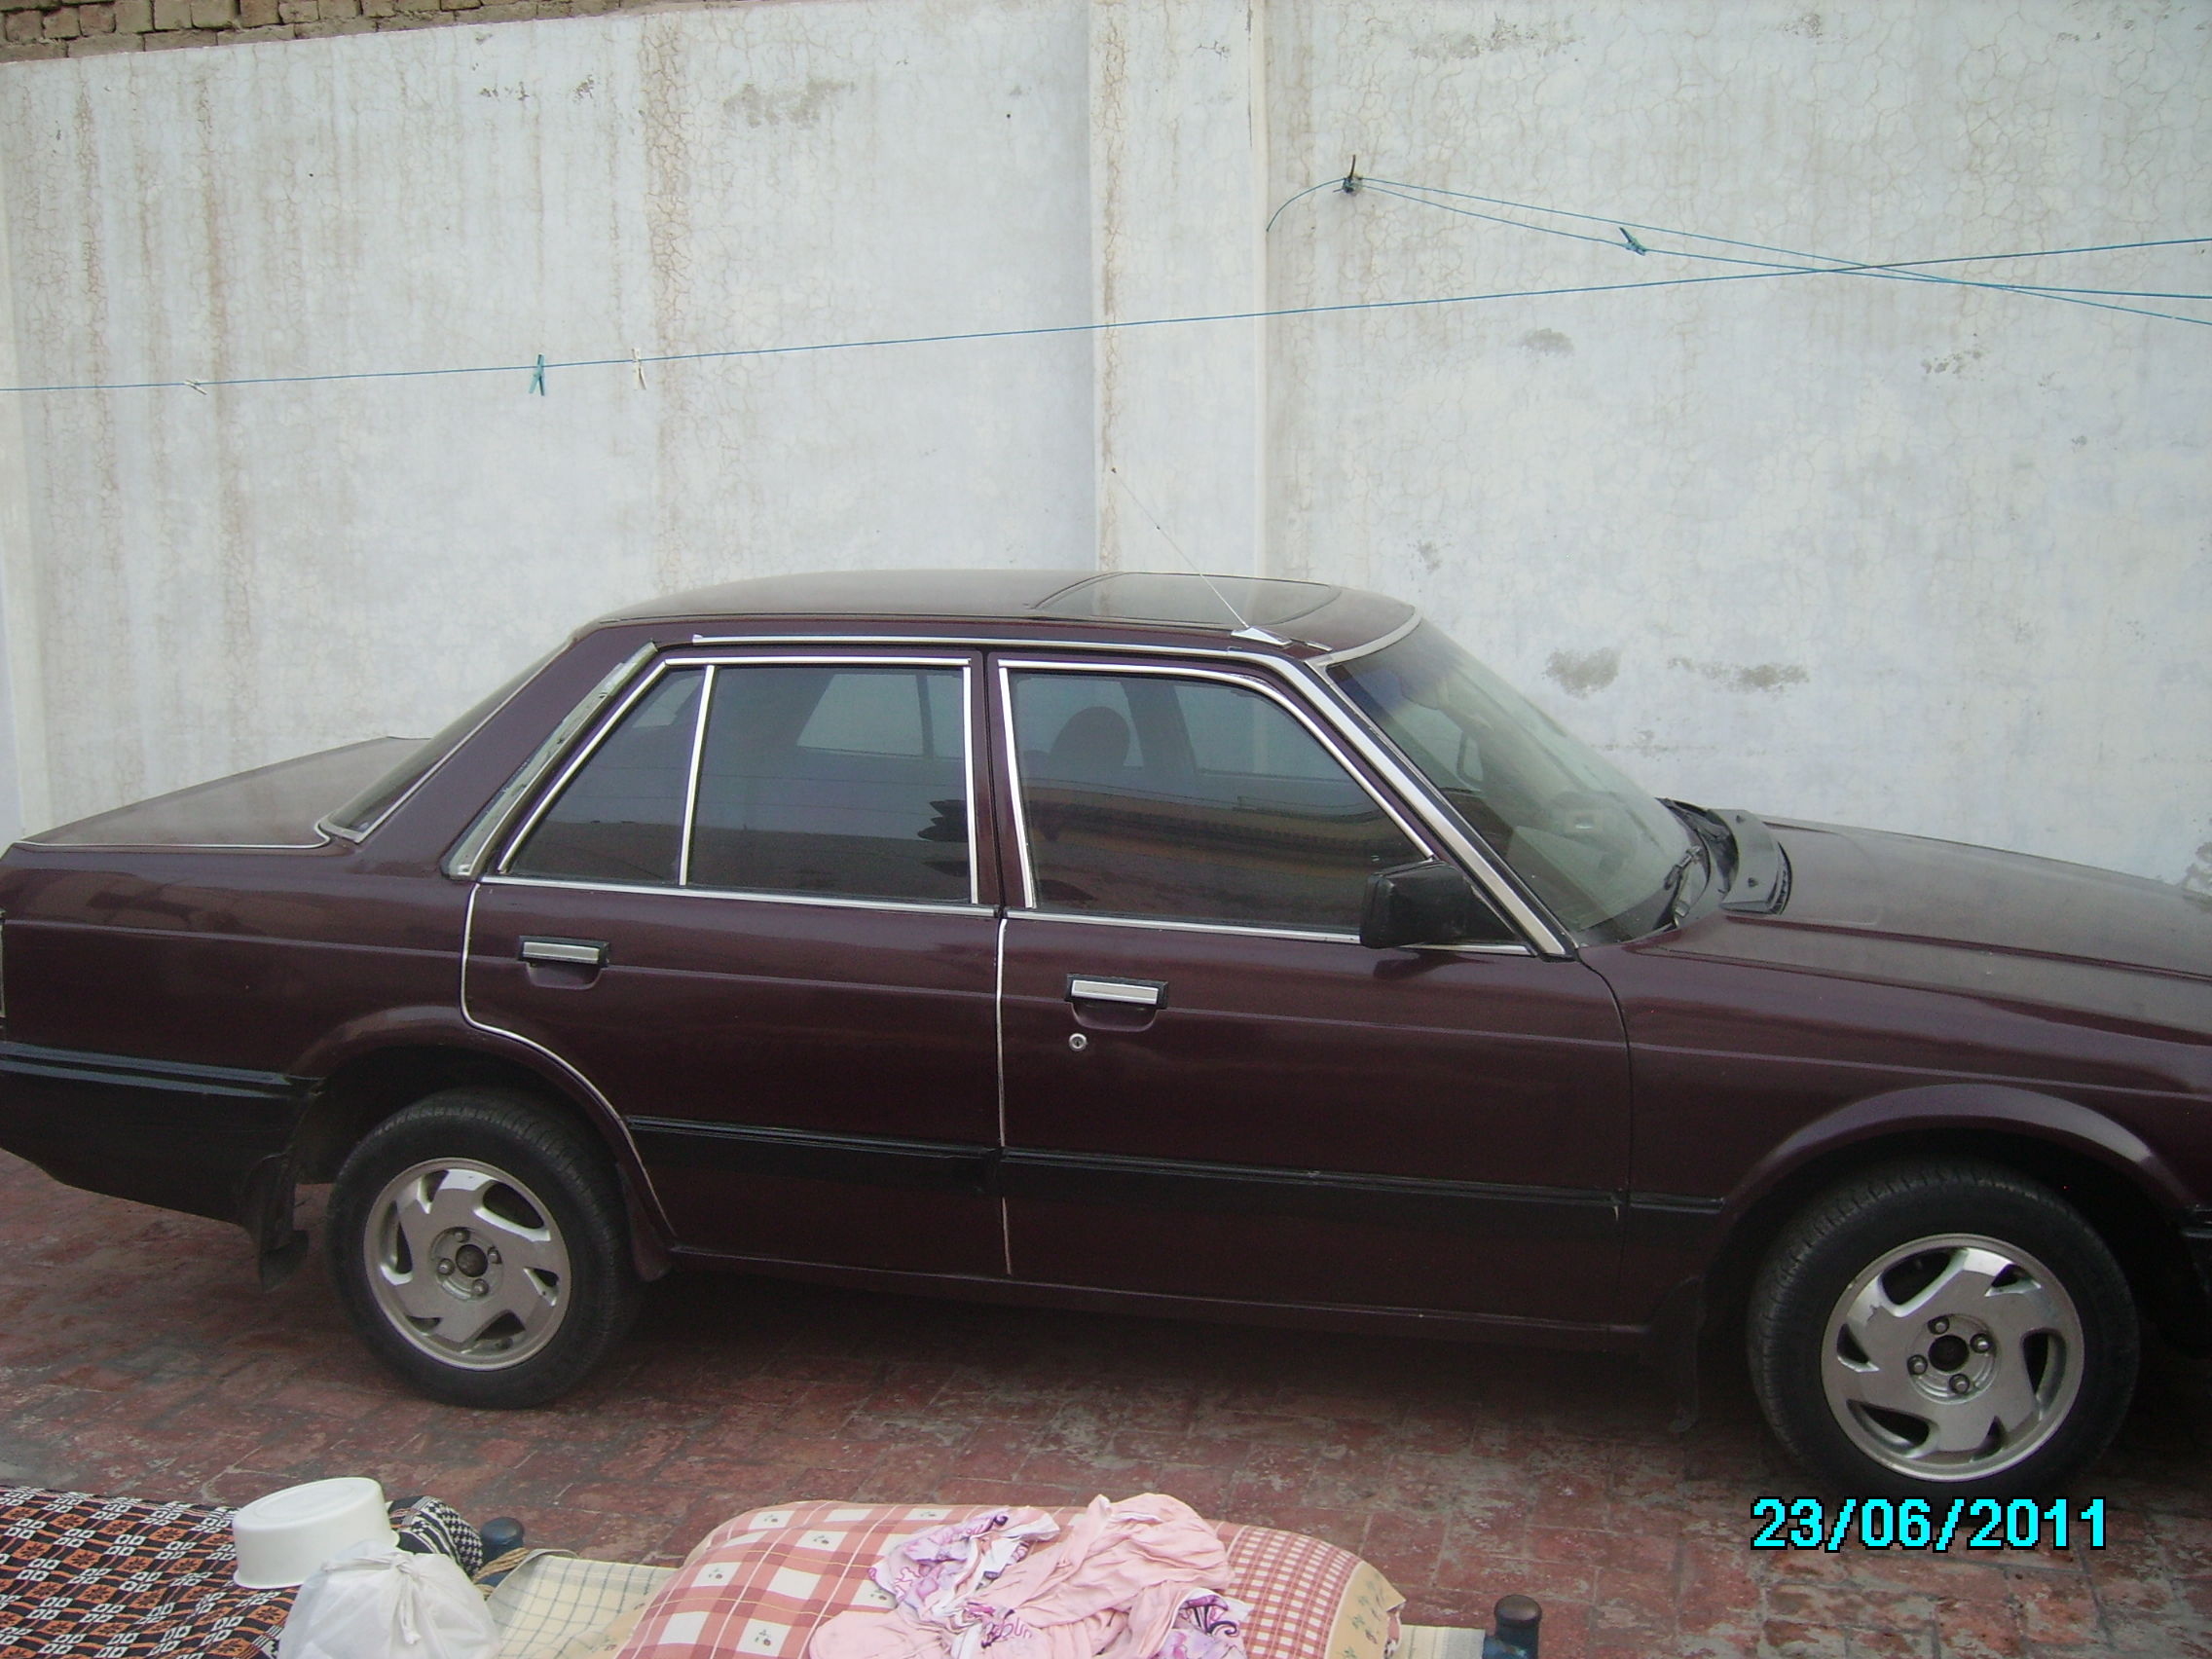 Honda Accord 1985 of Muhammad Shahid - 40089